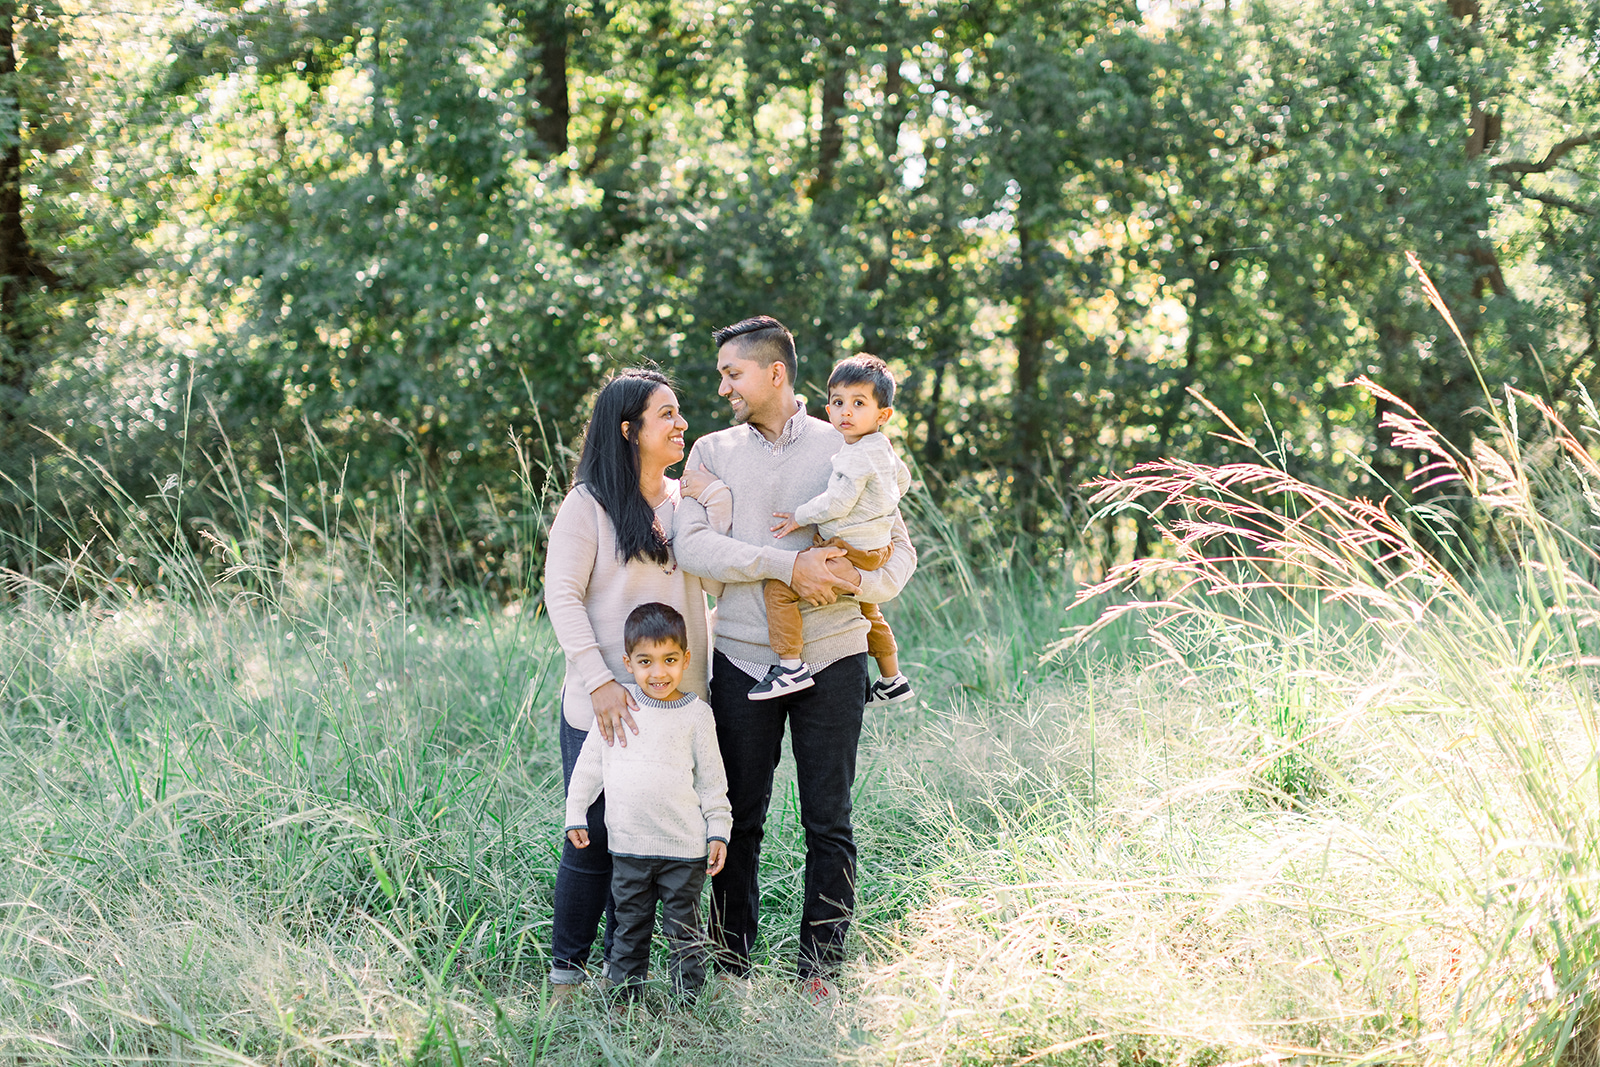 four corners photography rego fall mini 2018-1best atlanta family photographer cator woolford engagement session mcdaniel farm park family session atlanta mini session atlanta christmas mini session.jpg